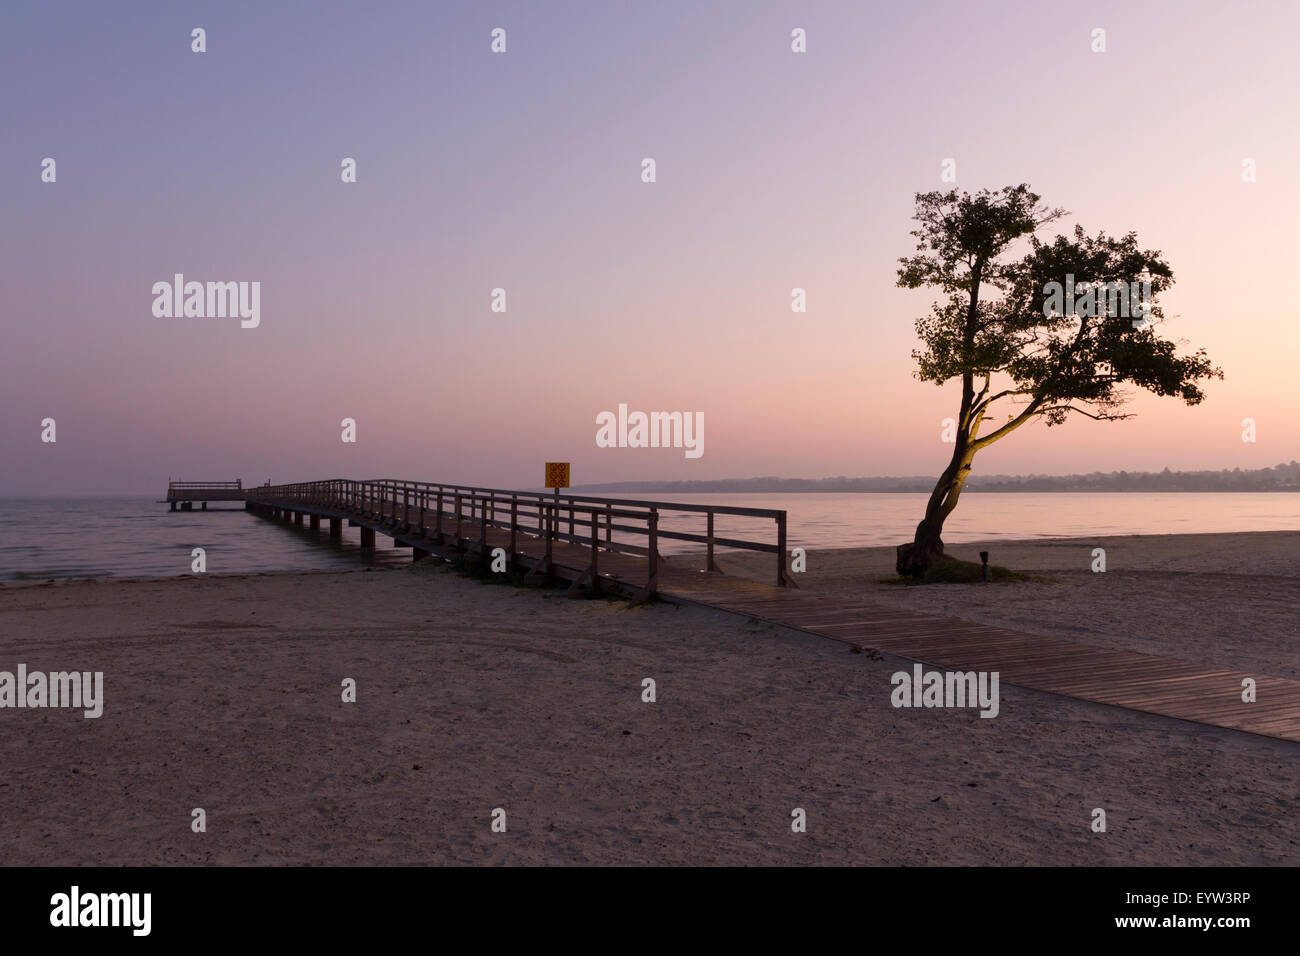 Morning light at the pier - Stock Image